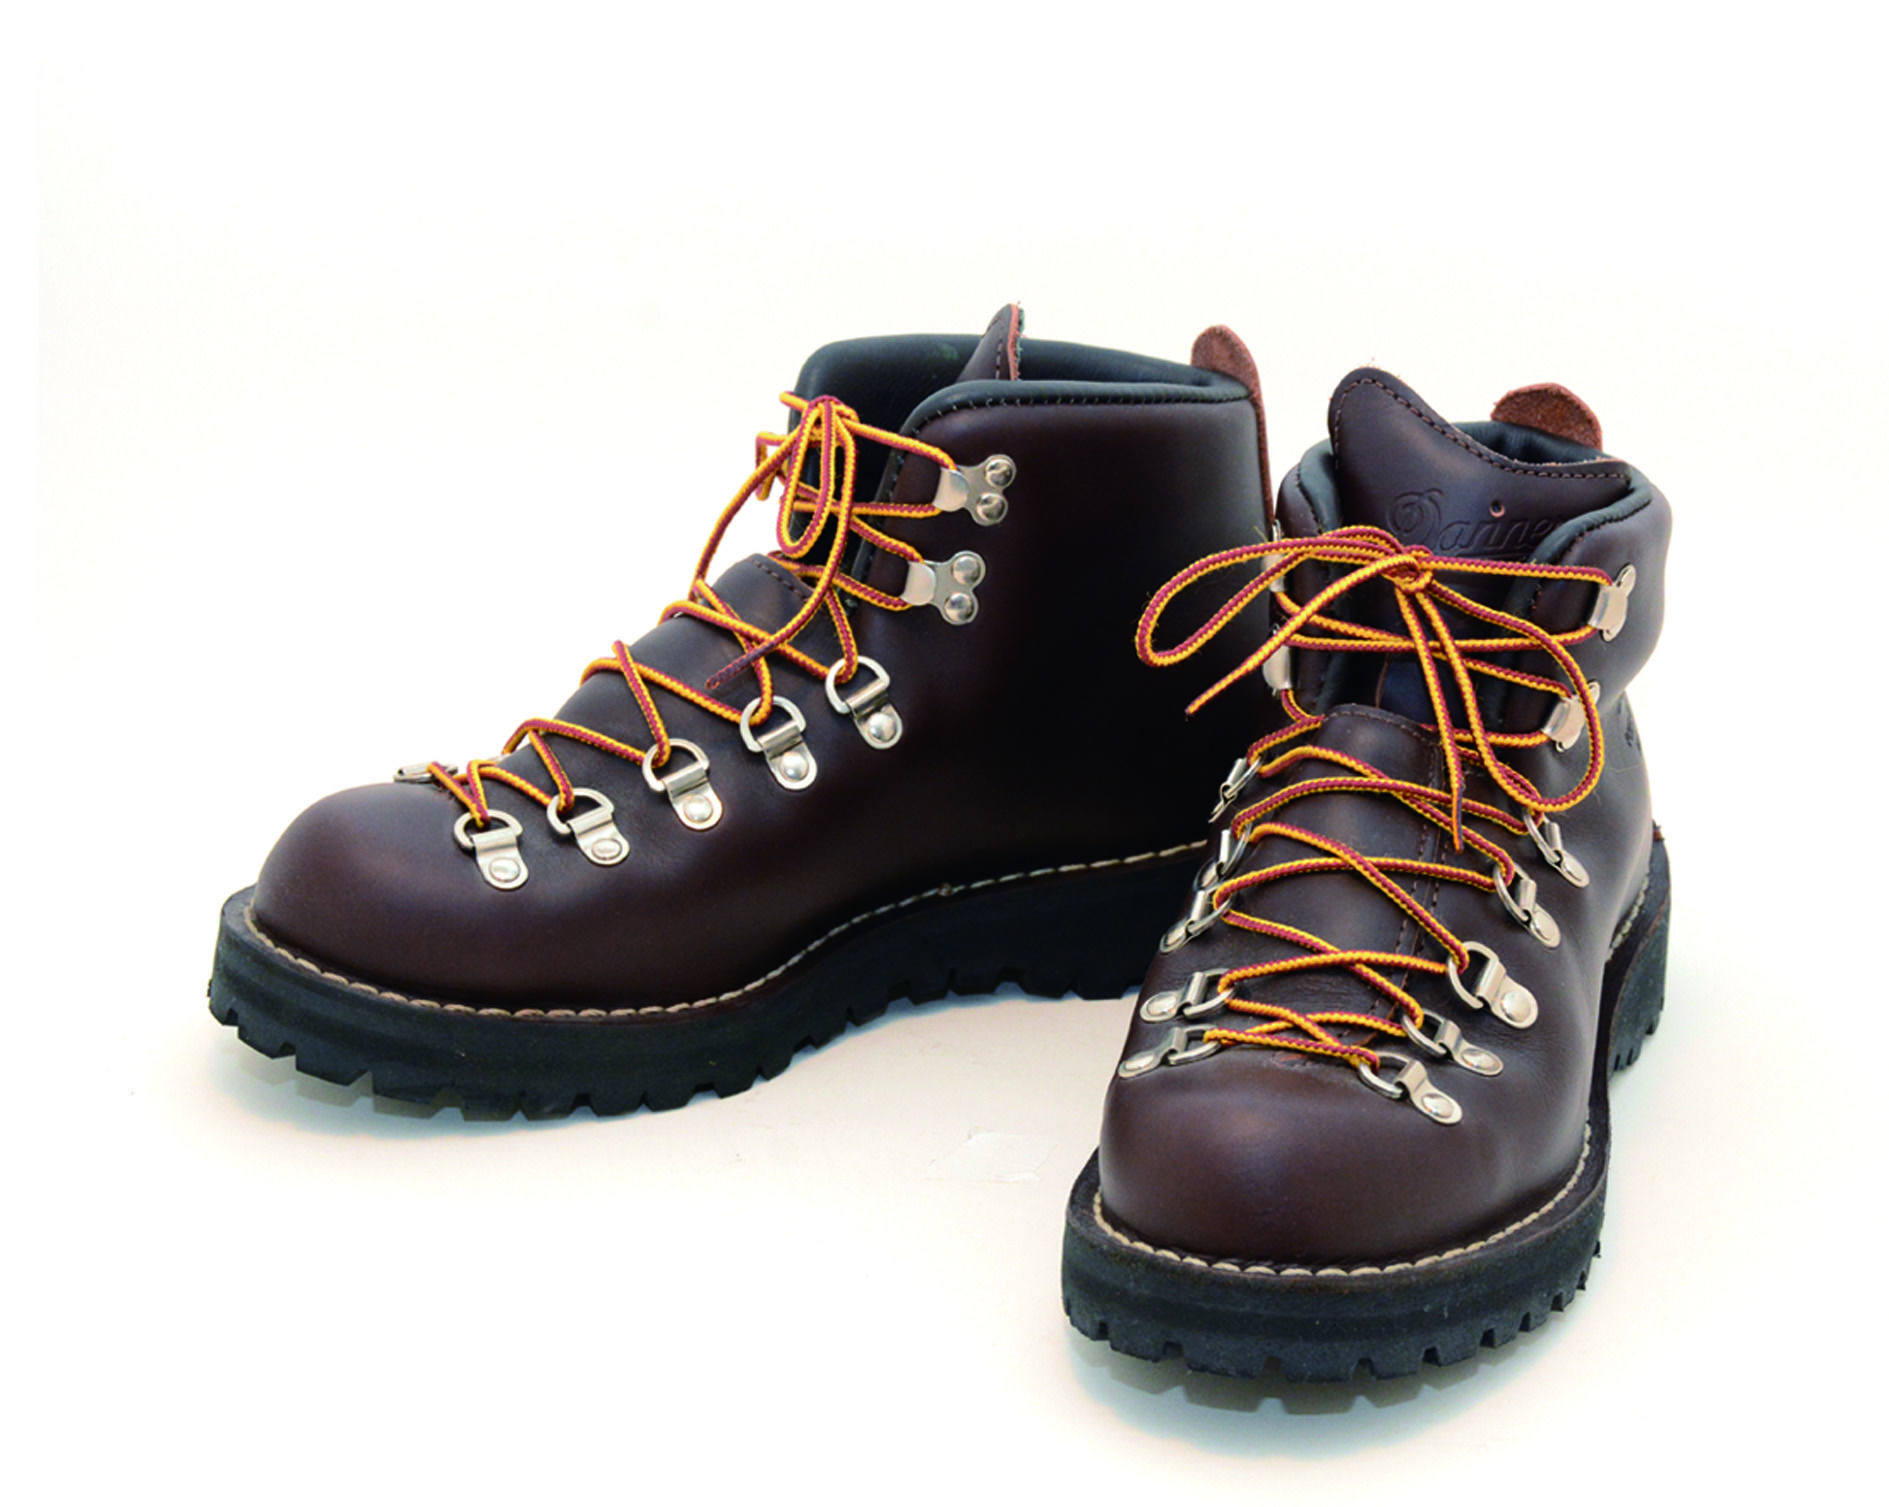 〈Danner〉MOUNTAIN LIGHT